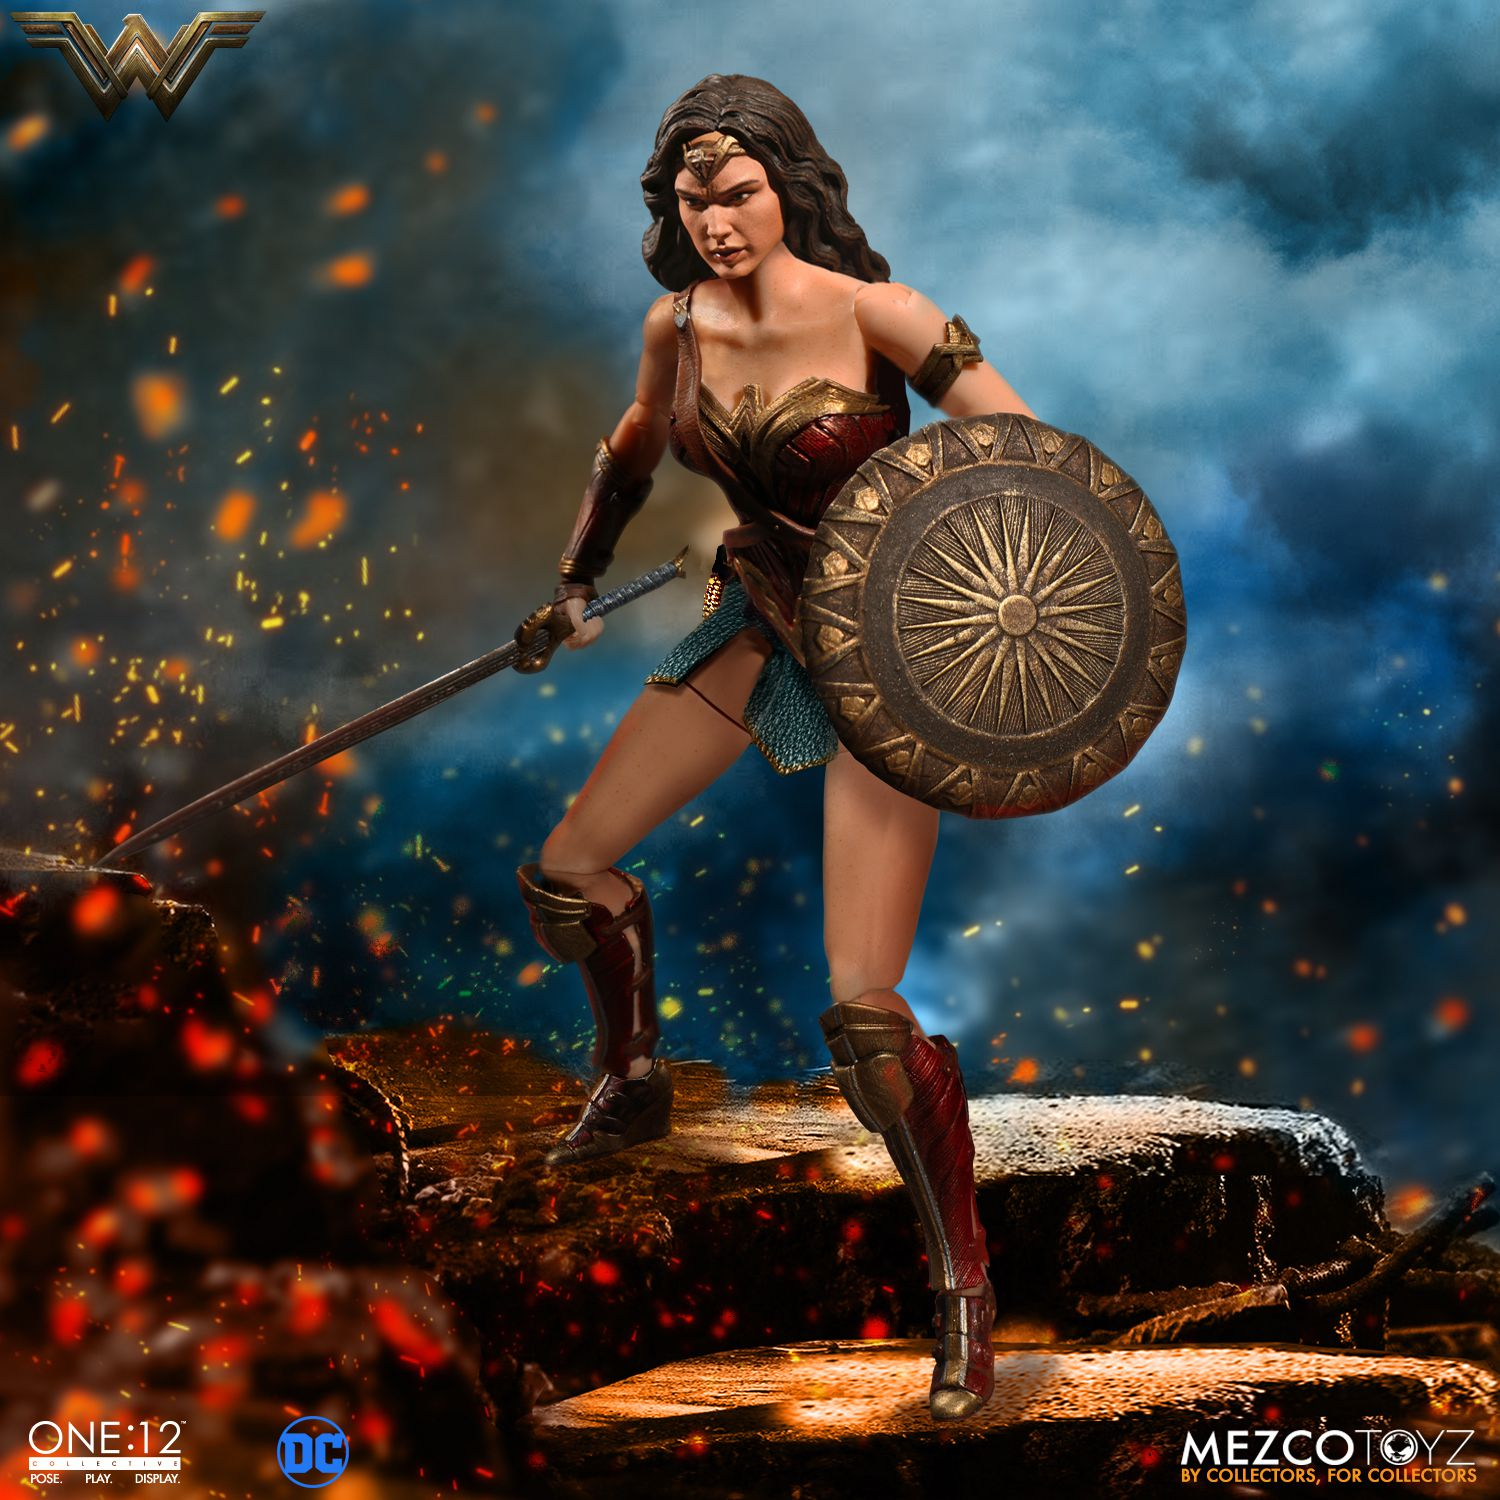 Wonder-Woman-One12-Mezco-004